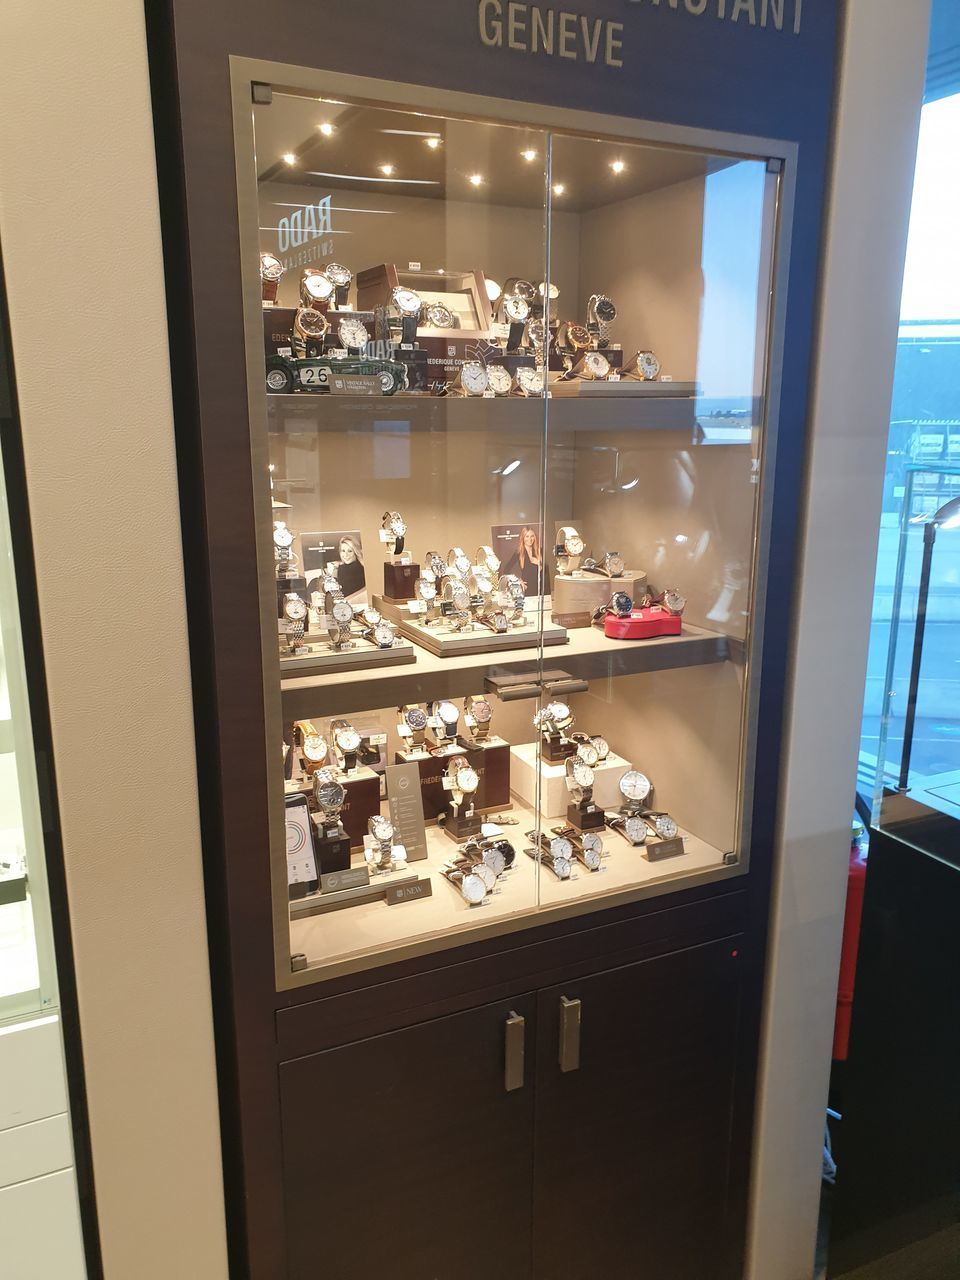 glass - material, transparent, illuminated, window, no people, indoors, food and drink, business, reflection, domestic room, night, modern, cabinet, large group of objects, container, bottle, household equipment, appliance, choice, furniture, display cabinet, luxury